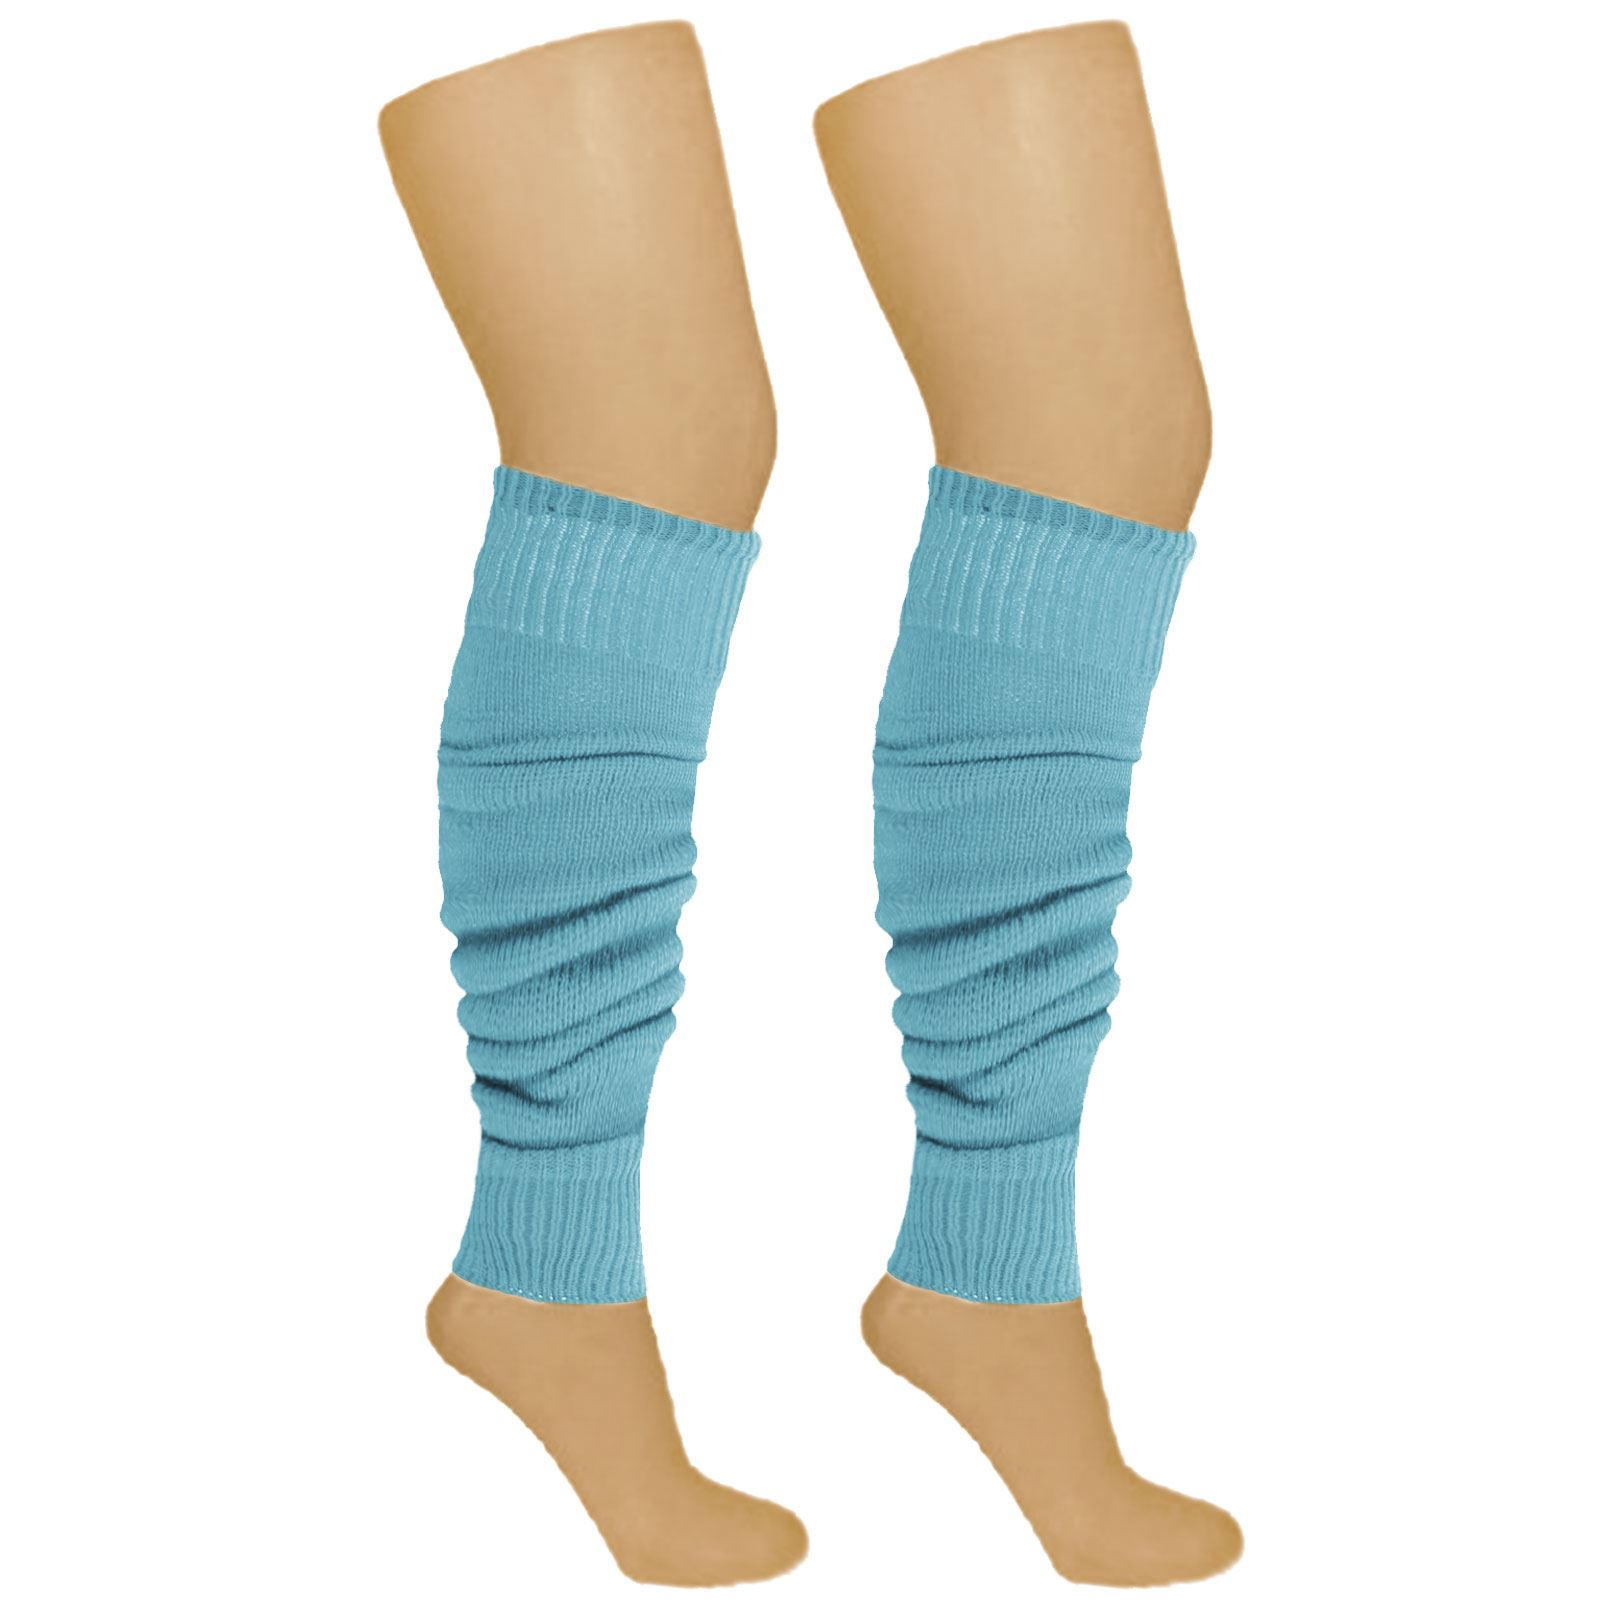 While you may like the stylish look leg warmers give off, they're perfect for cold weather commuting to the gym, dance class, and more.